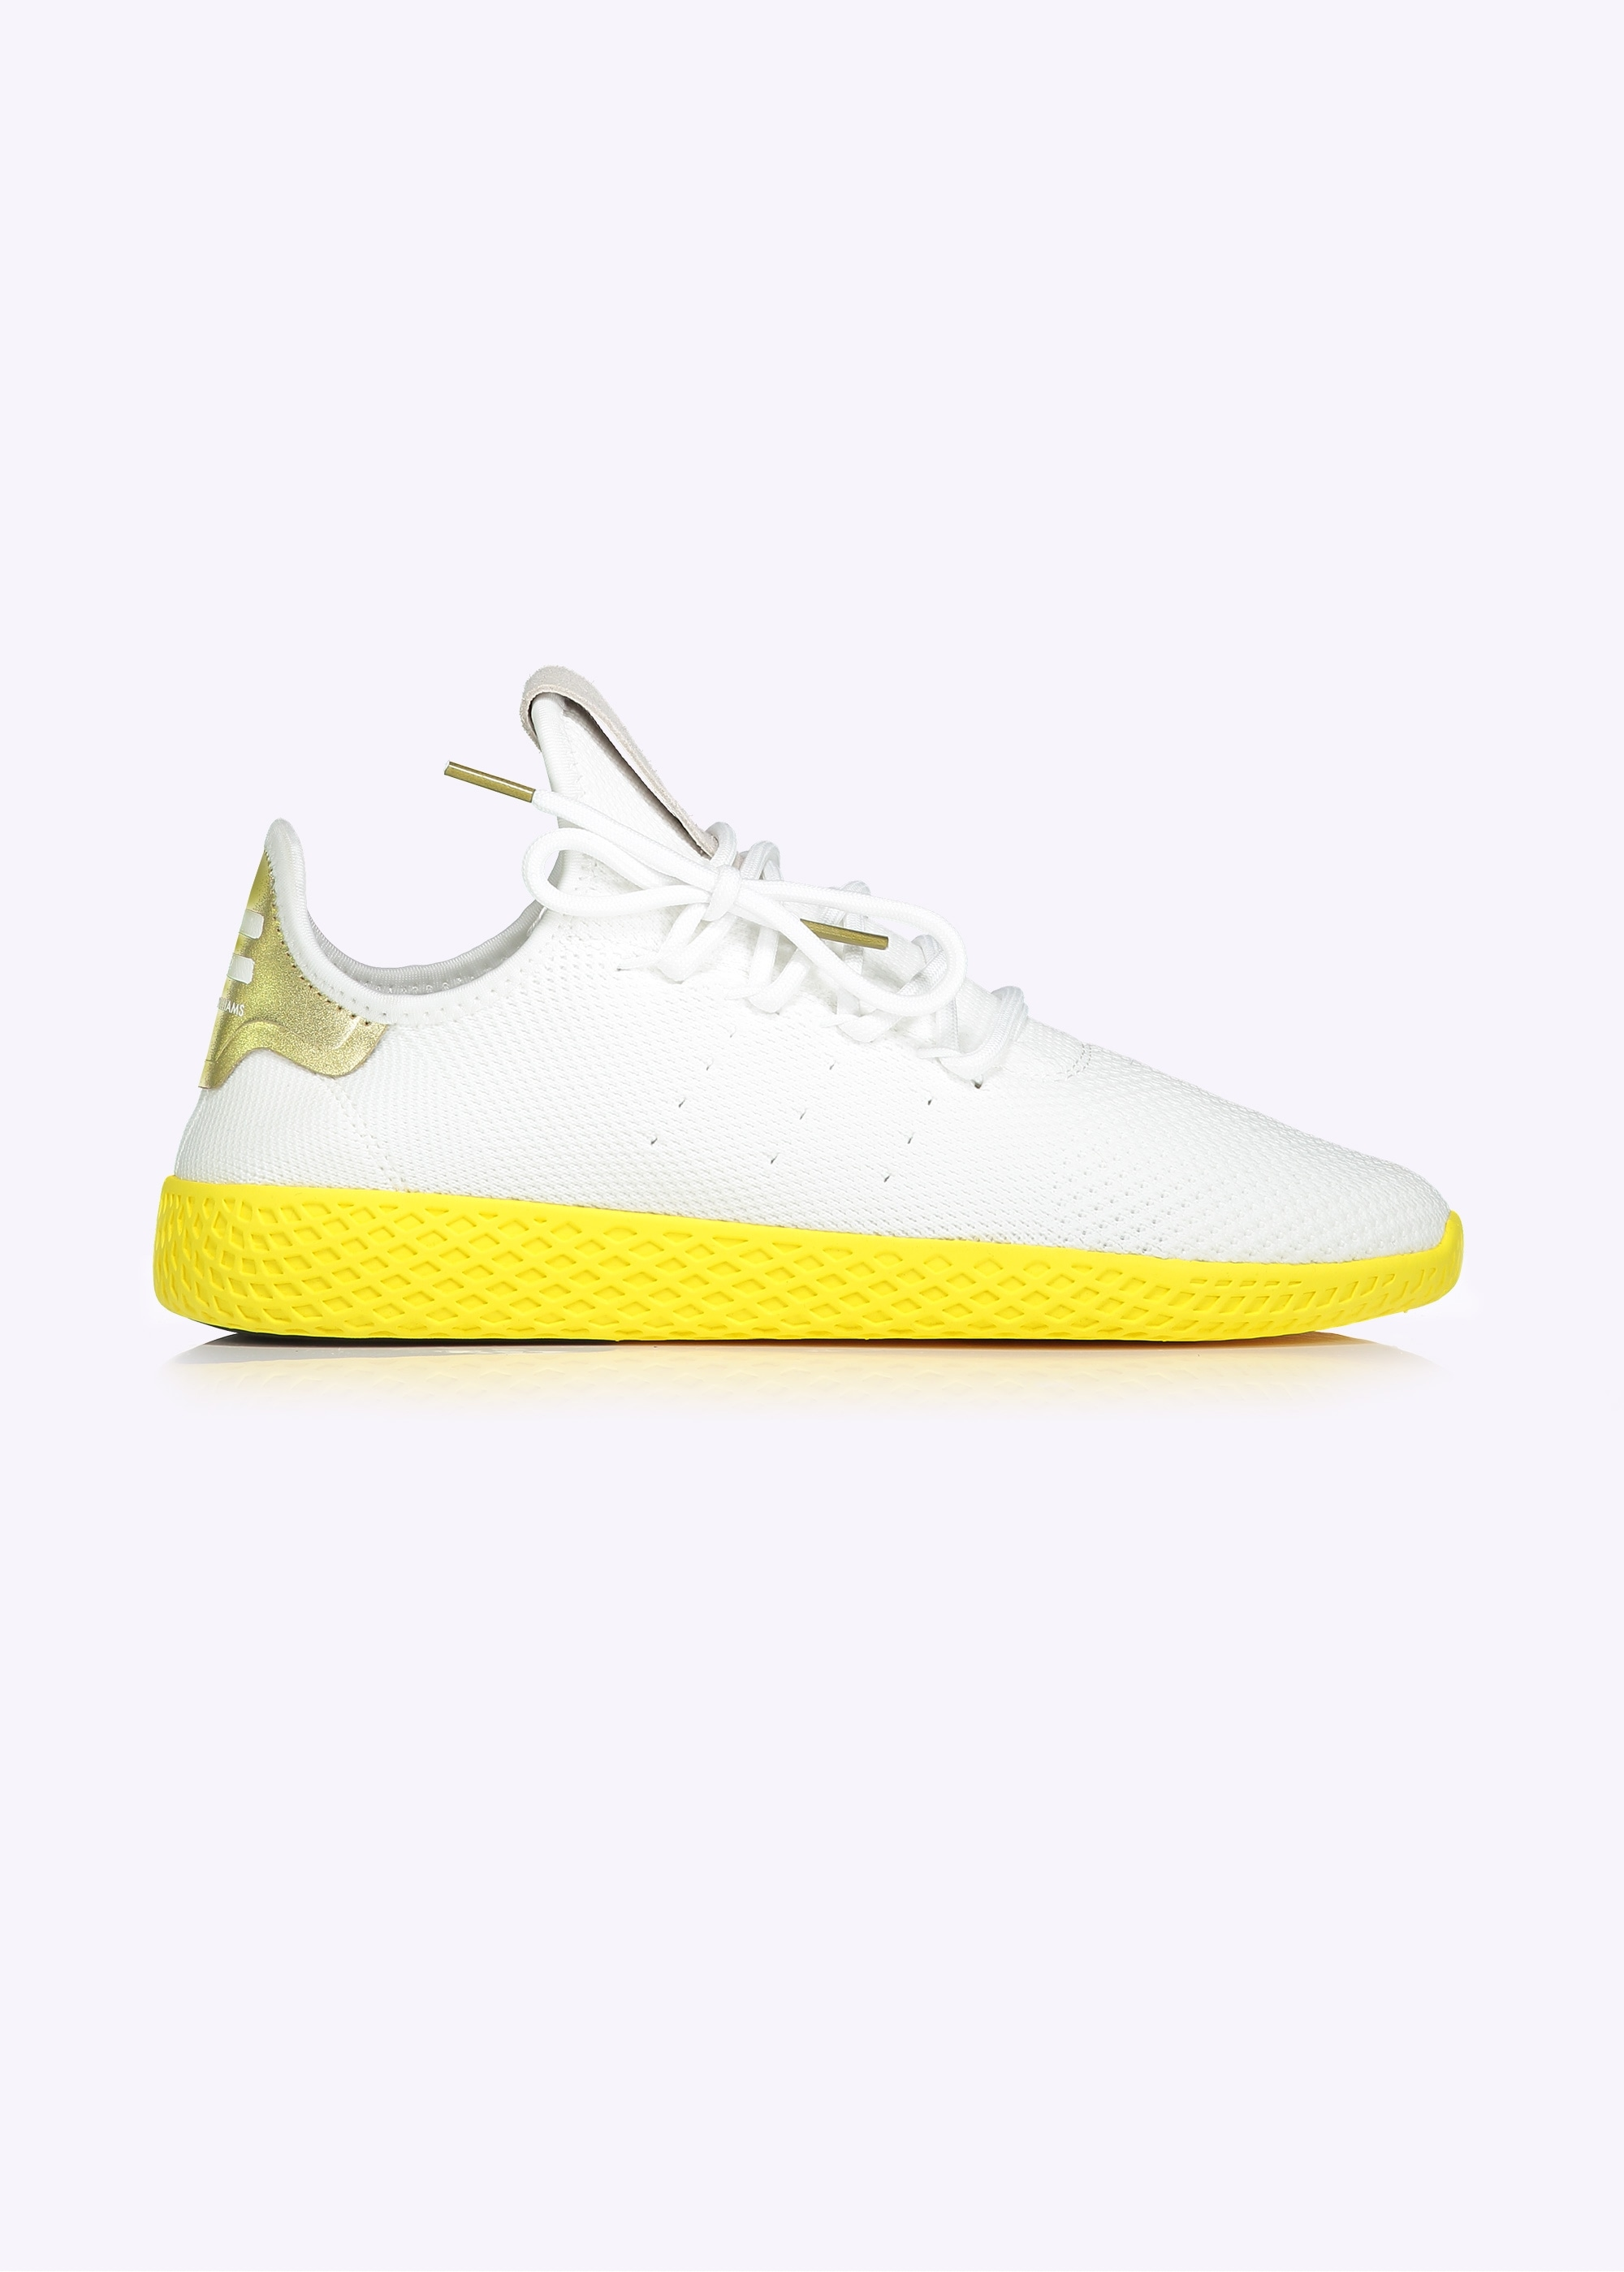 how to buy pharrell williams x adidas originals tennis hu yellow white -  bestreviews365.com 57779a2c64